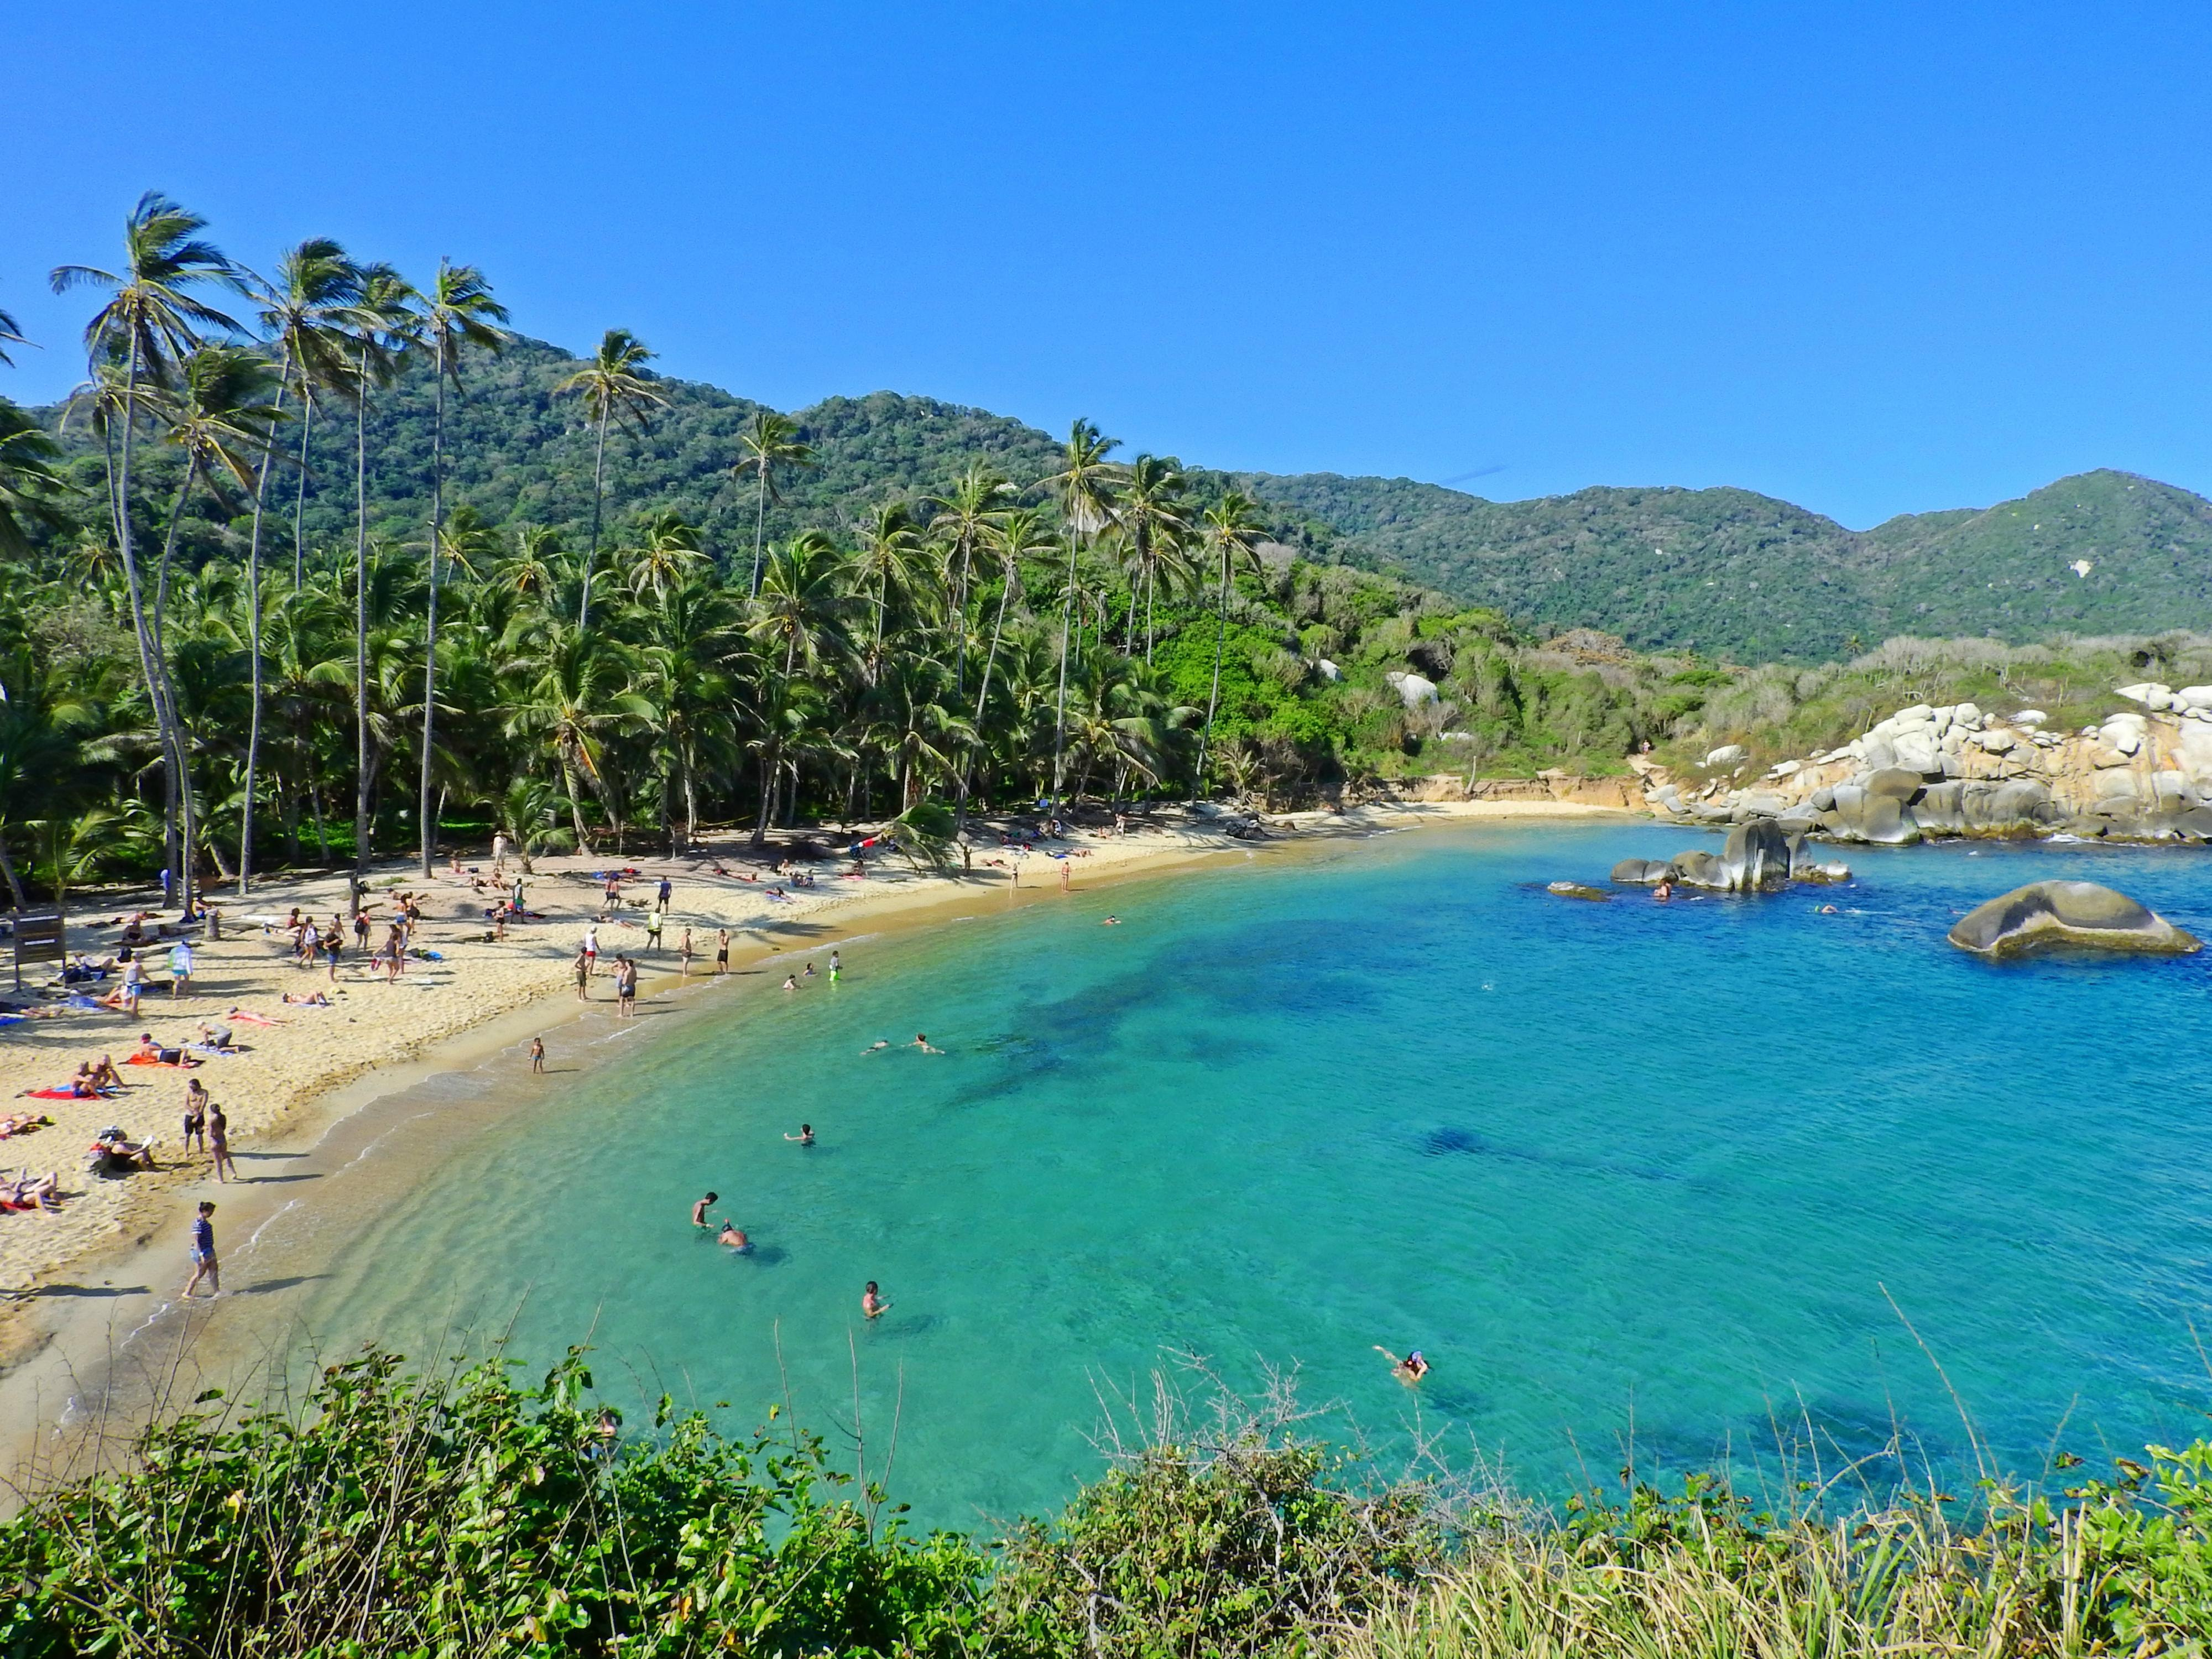 How to Spend 24 Hours in Tayrona National Park